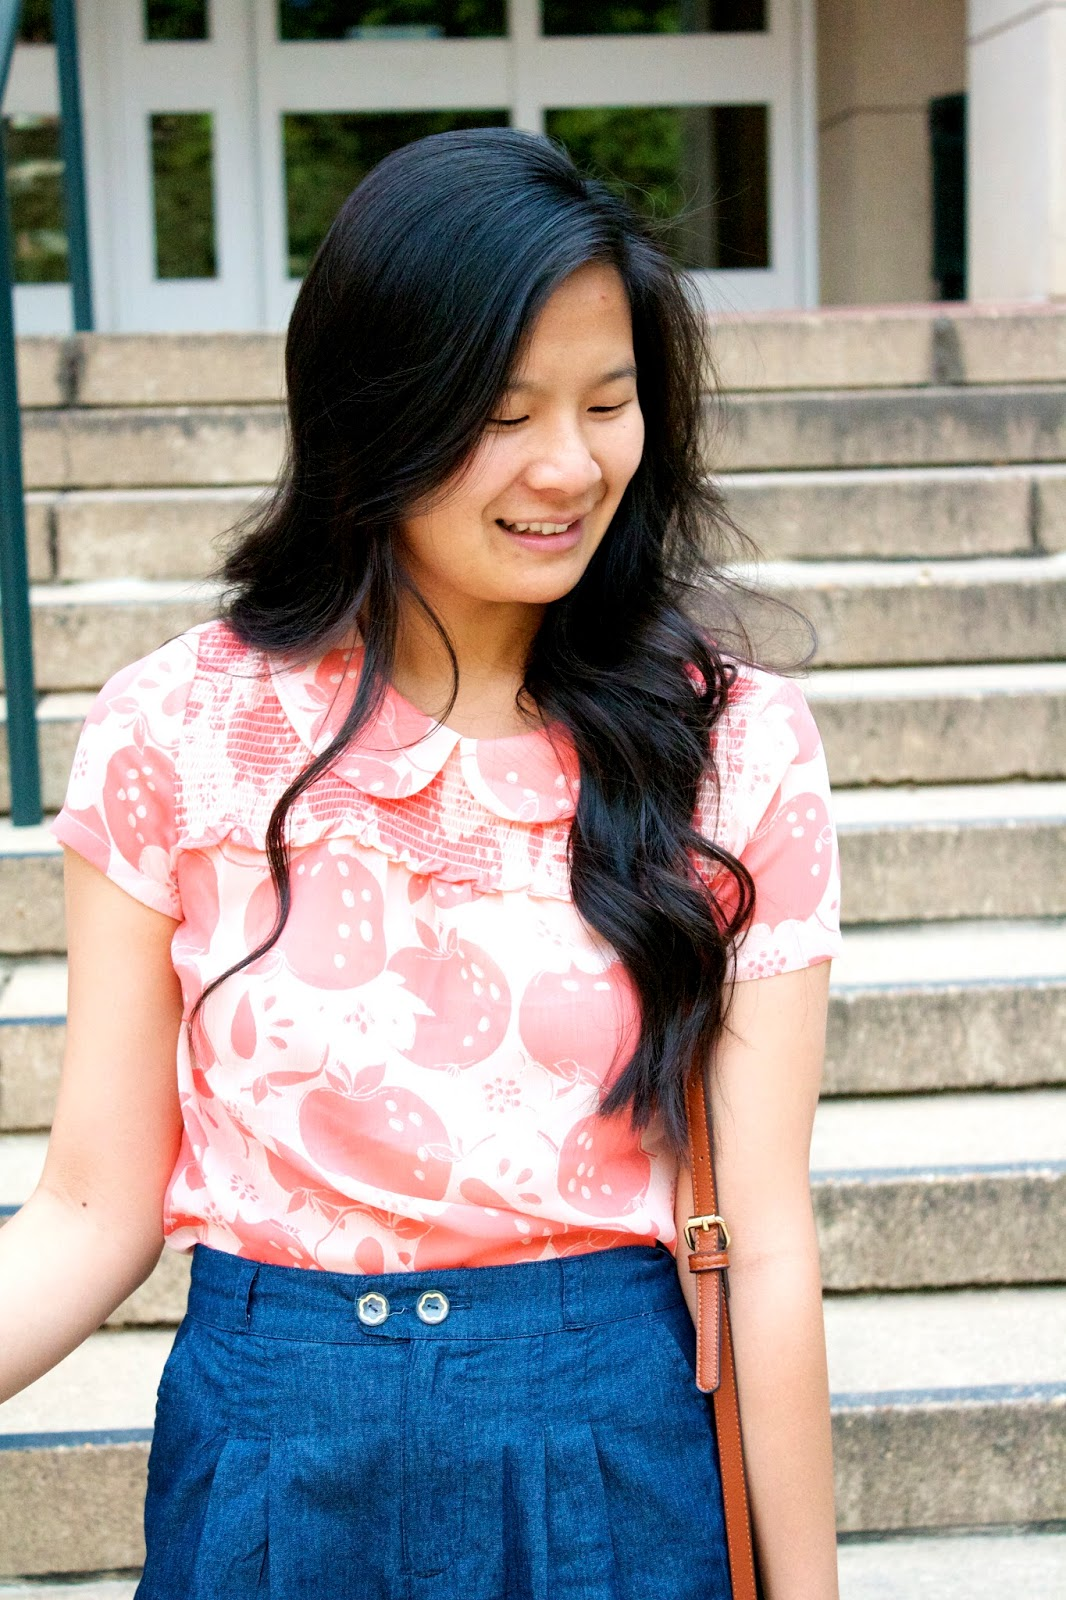 Styling a printed top